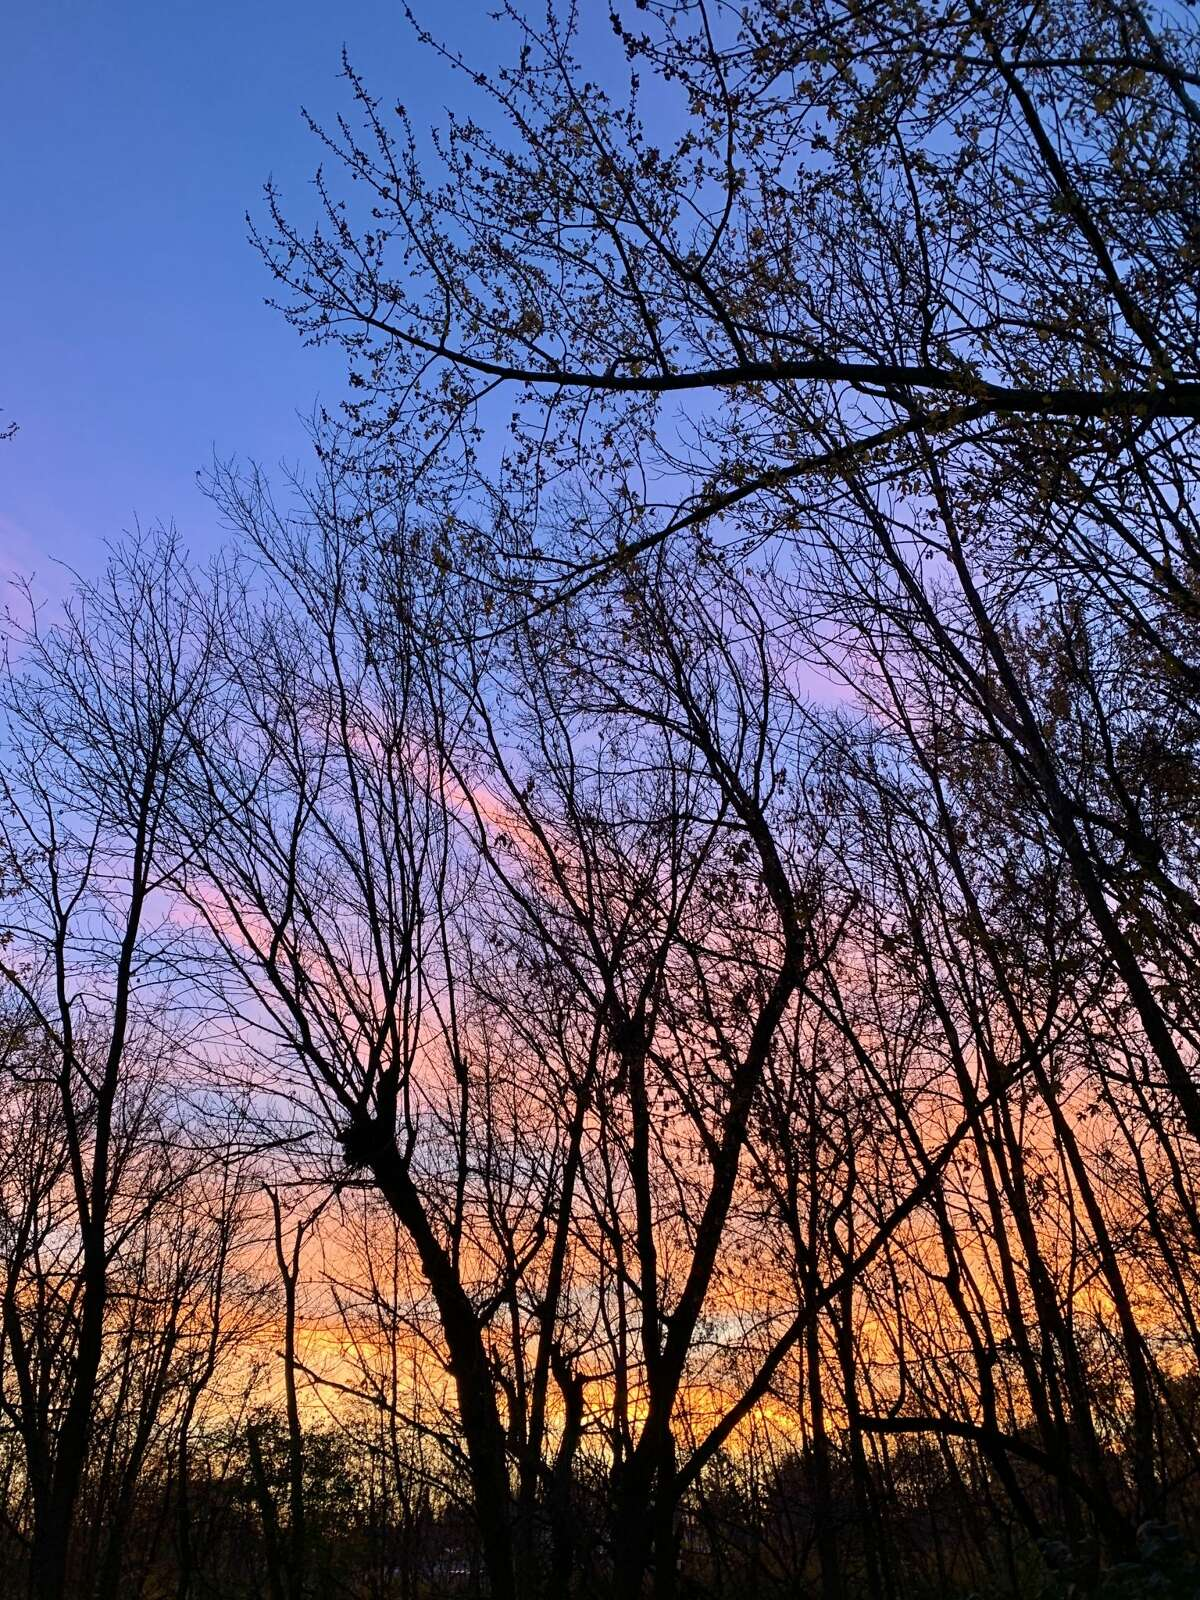 Taken in late November from Kathy Colman's backyard in Cohoes at sunset.